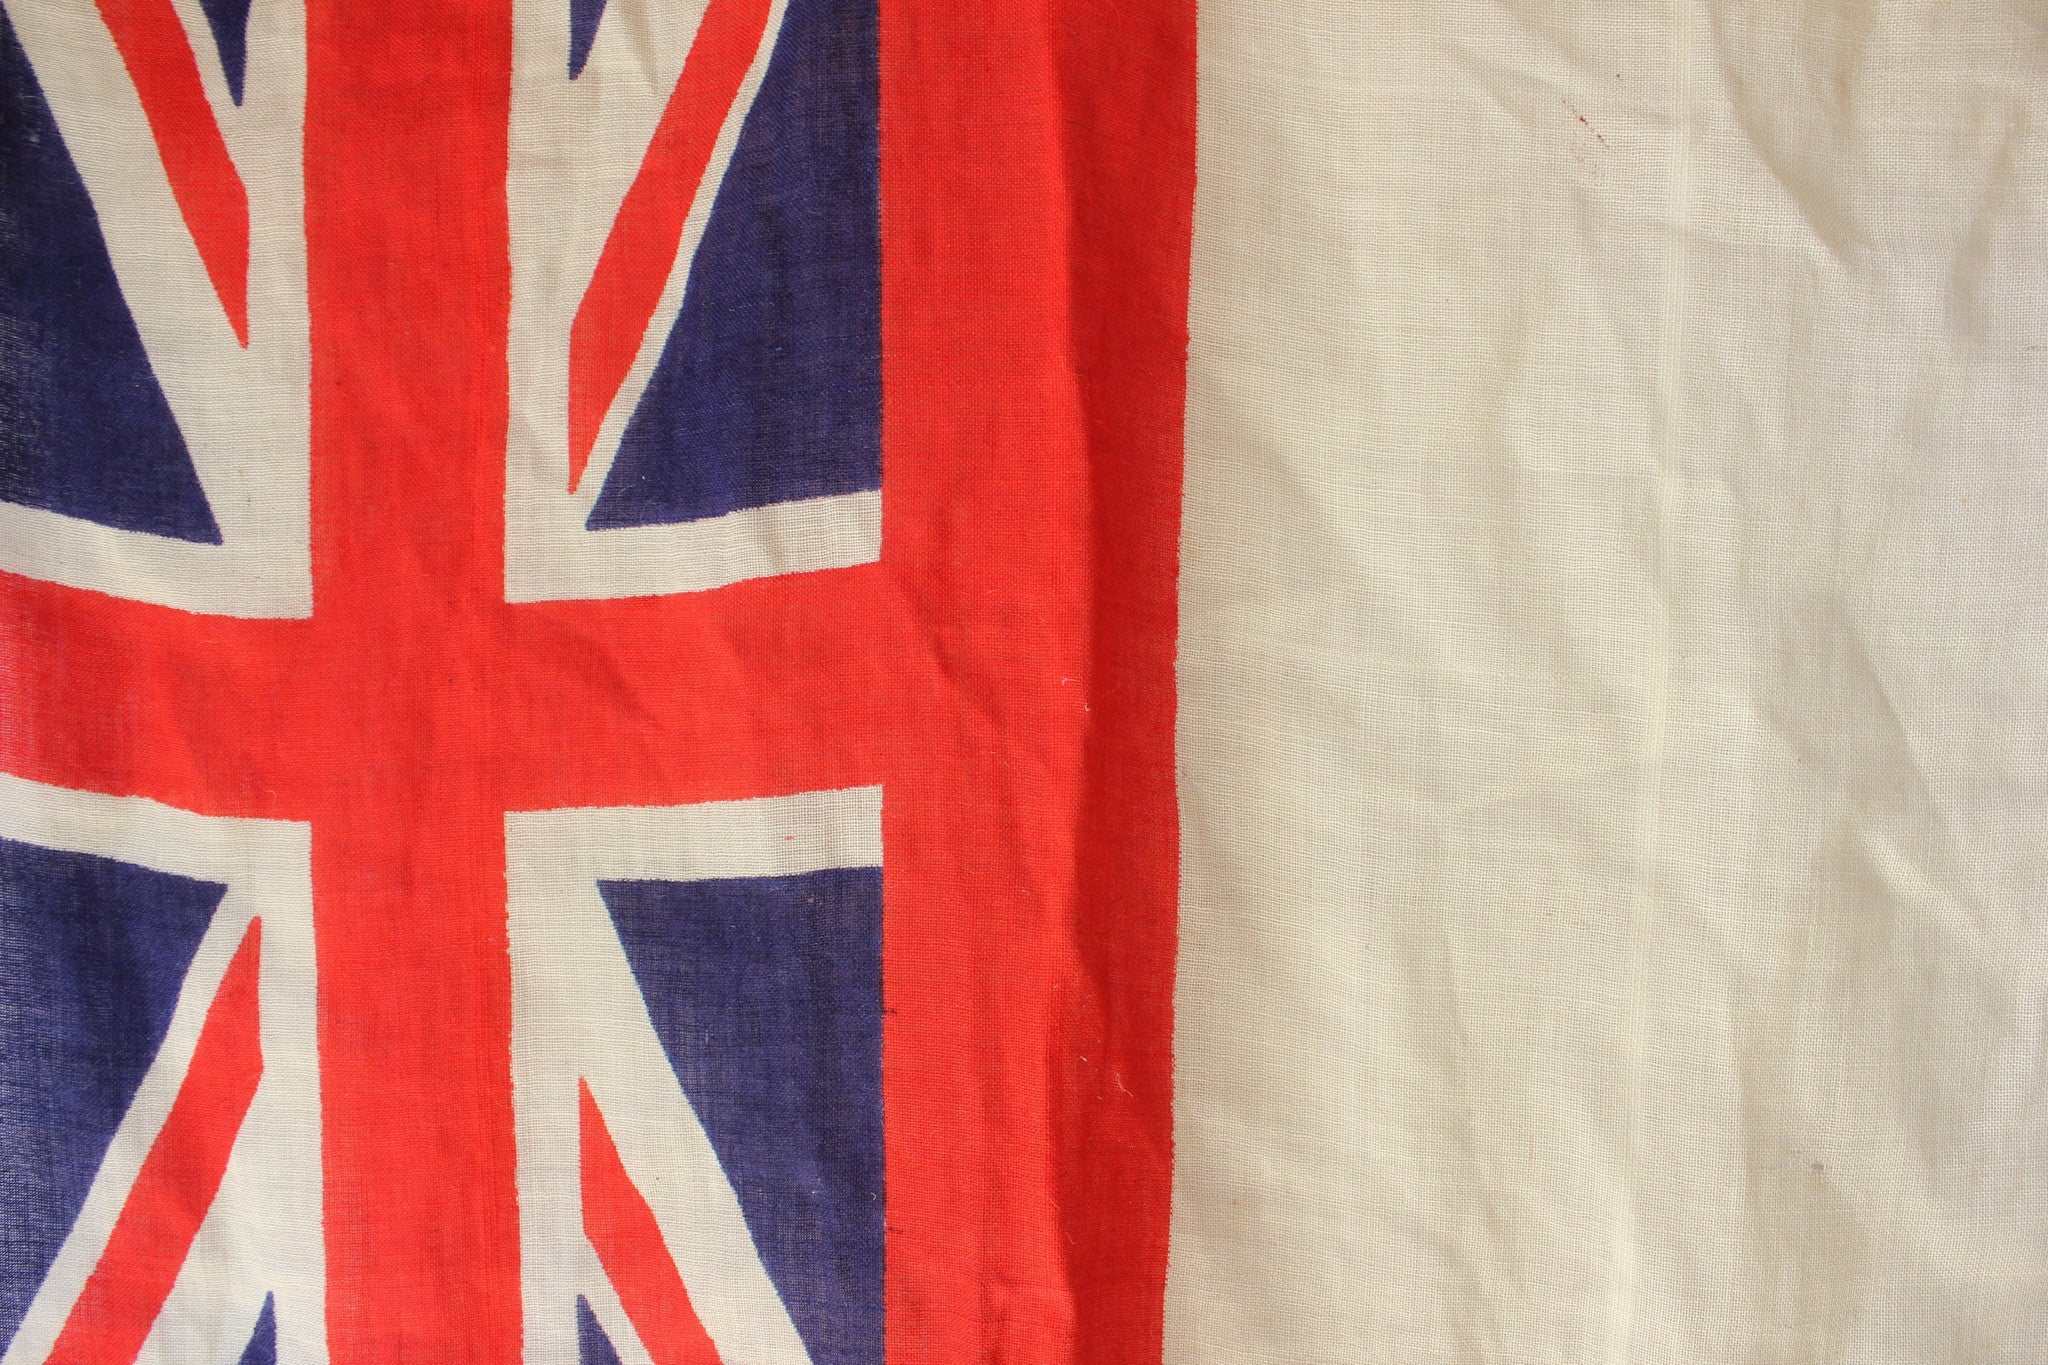 A Medium Sized British Antique Royal Navy White Ensign Flag c.1930